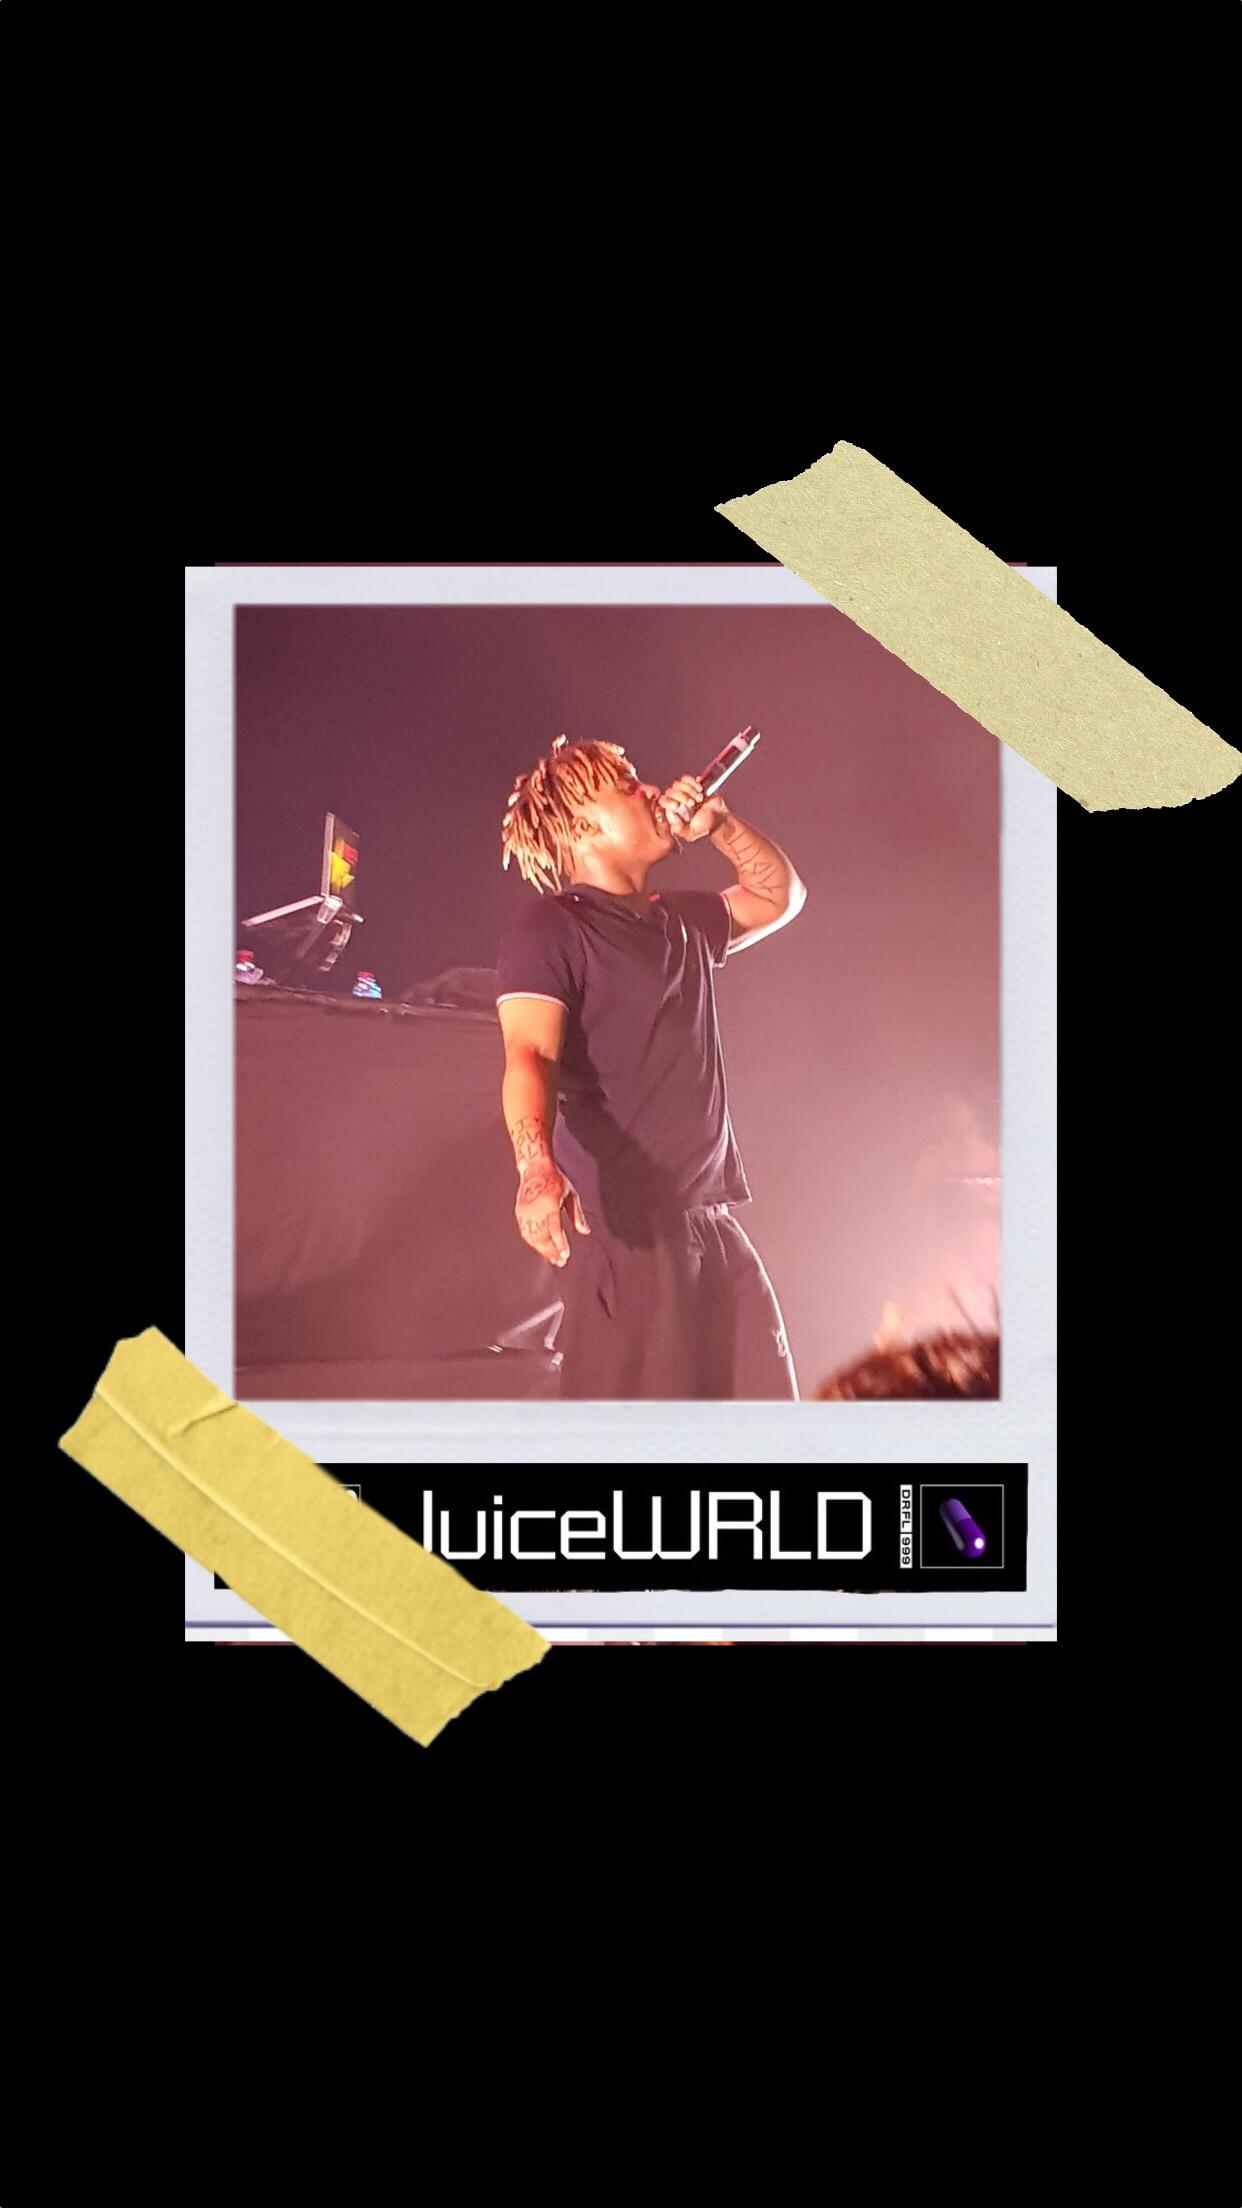 Juice WRLD wallpaper I made for iPhone and Android JuiceWRLD 1242x2208